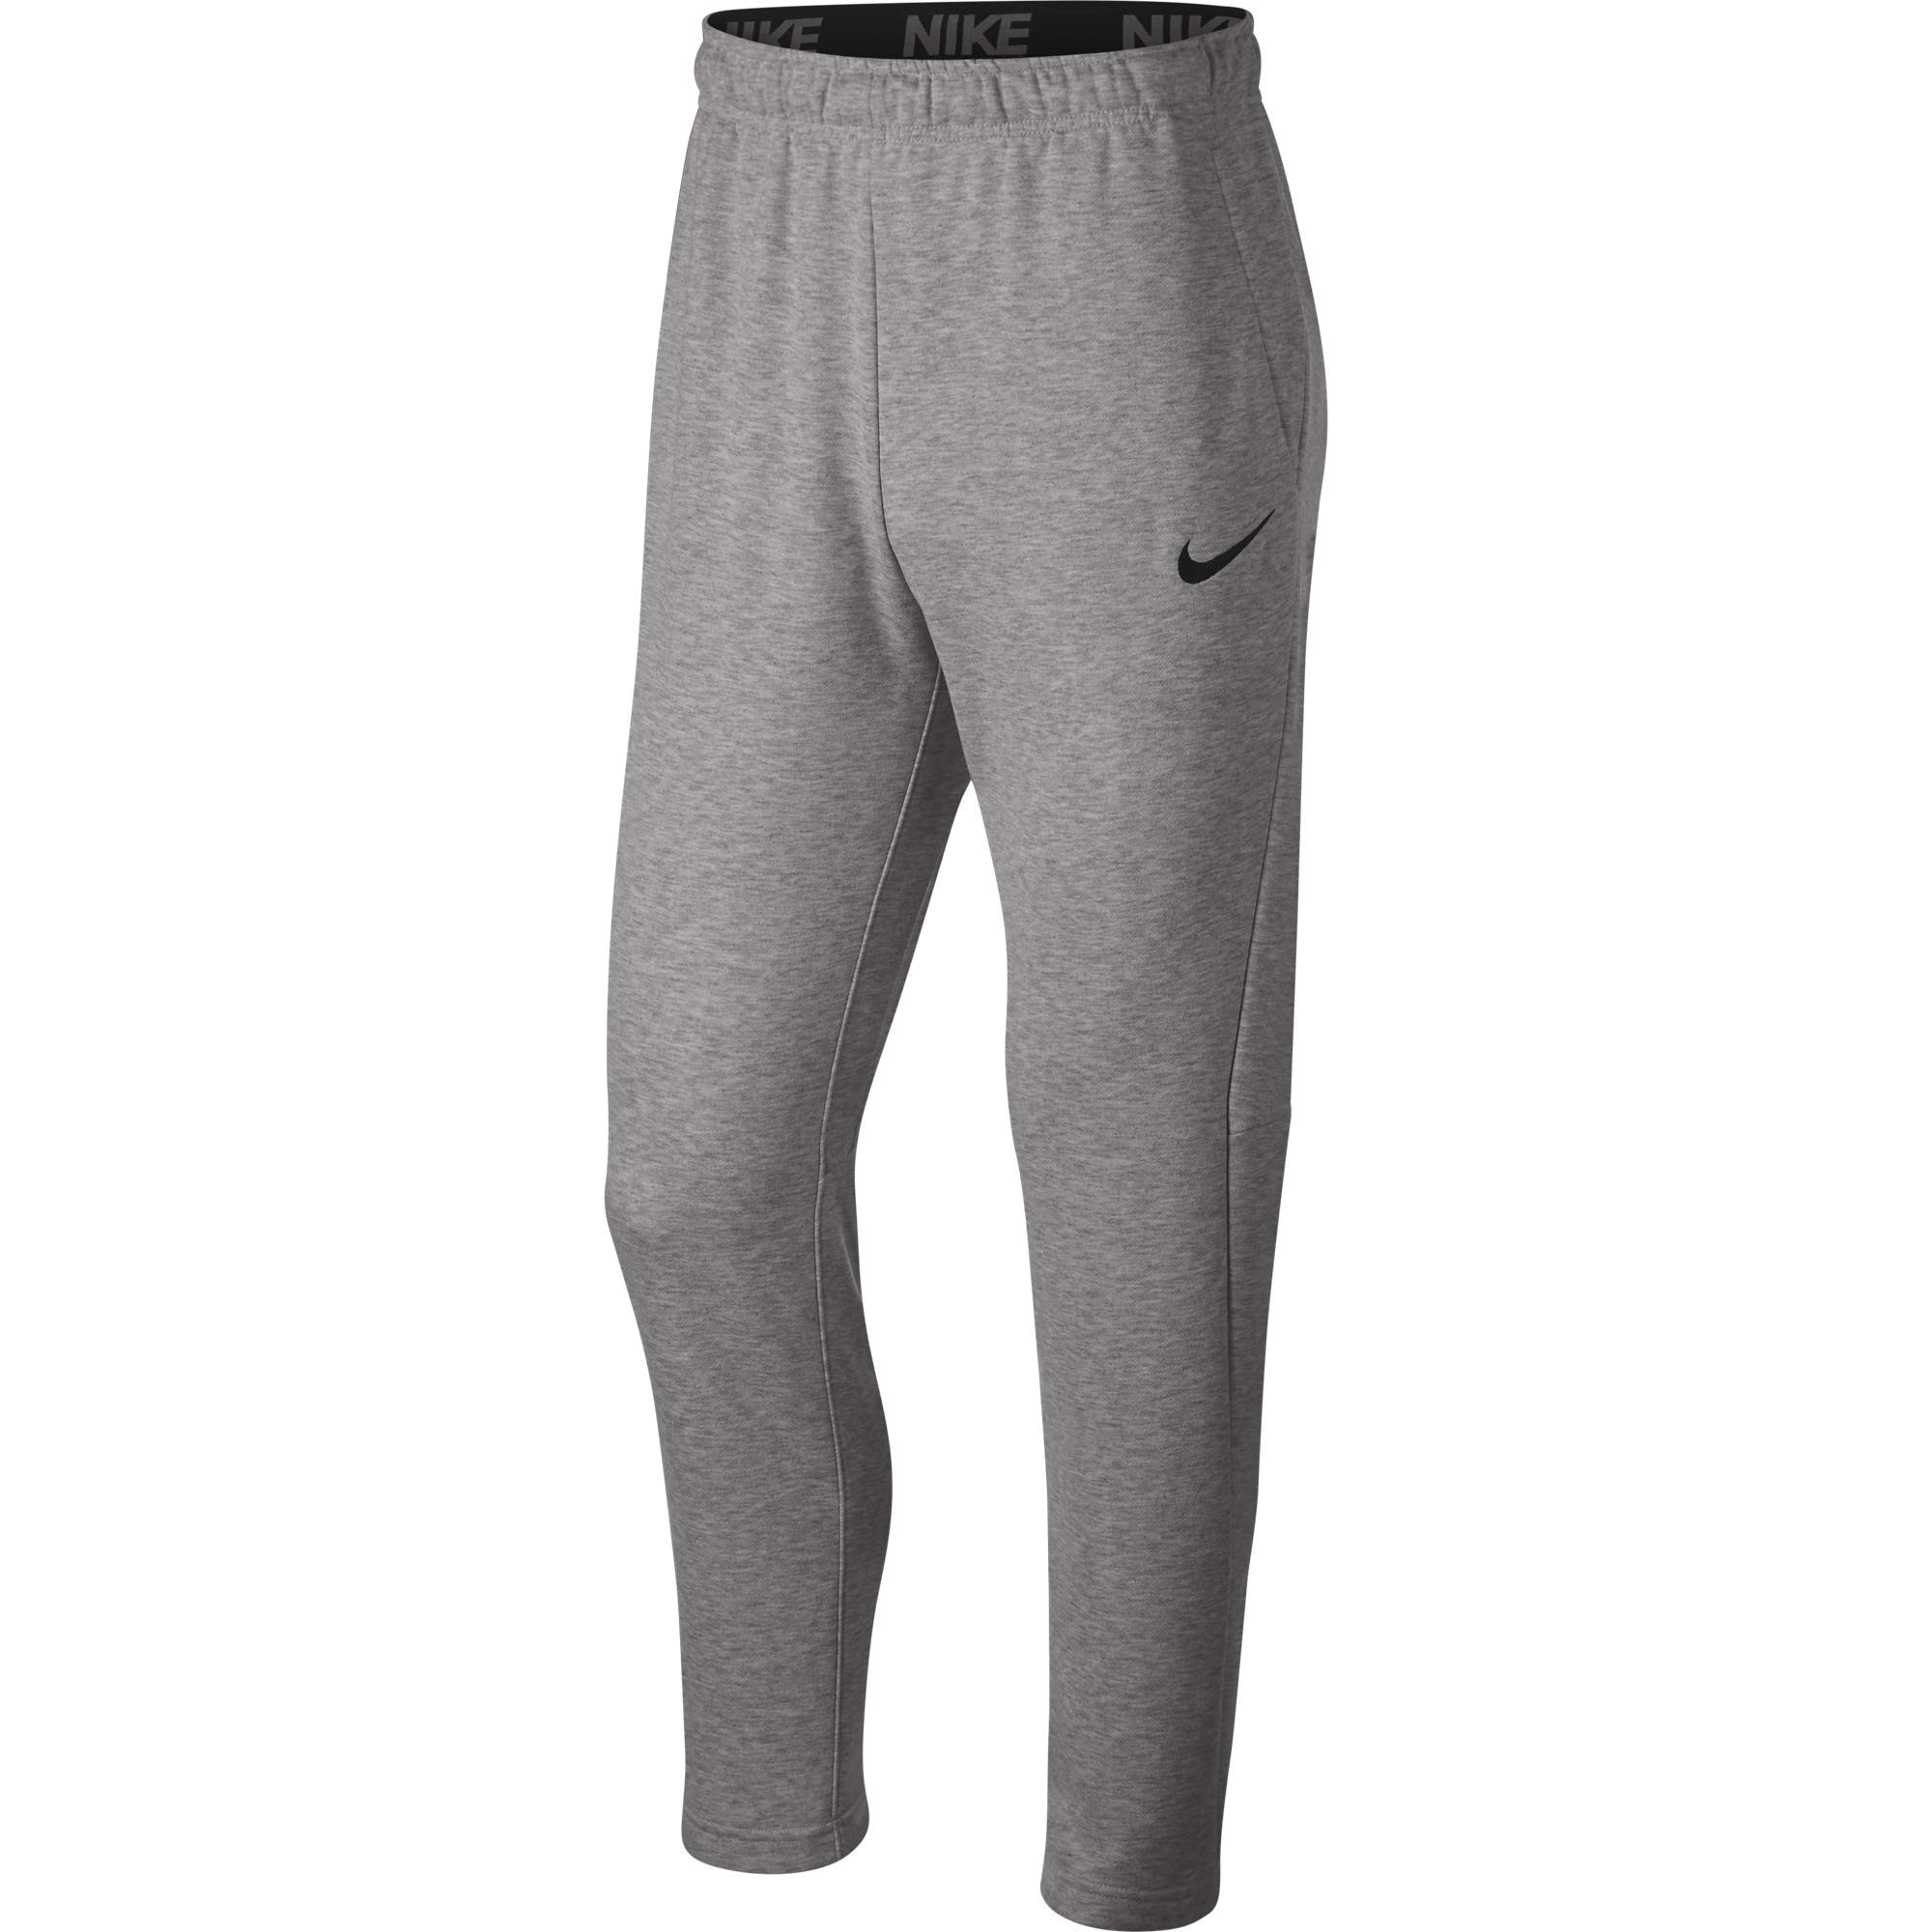 Nike Men's Dry Fleece Training Pants, Dark Grey Heather/Black, XXX-Large by Nike